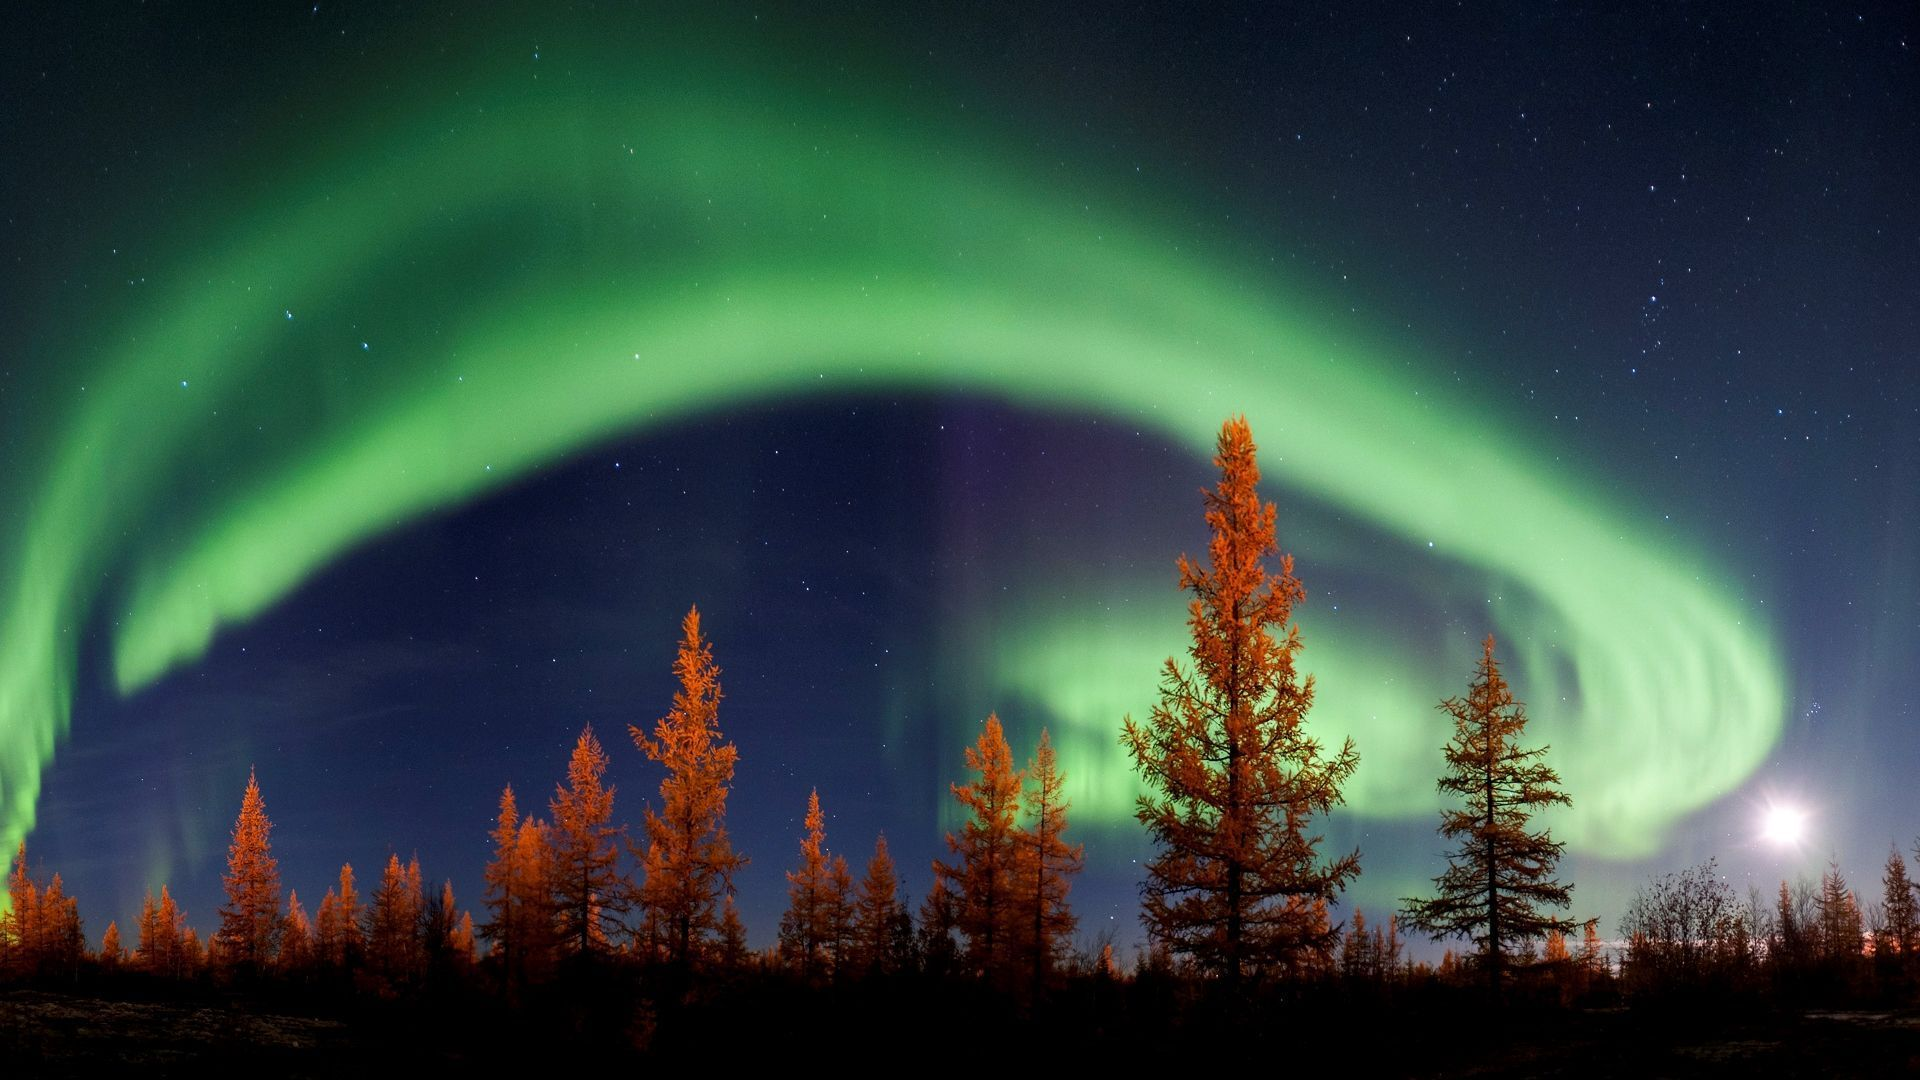 4k Wallpaper For Pc Windows 10 Trick Wallpaper Trick Wallpaper Windows In 2020 Wallpaper Pc 4k Wallpapers For Pc See The Northern Lights